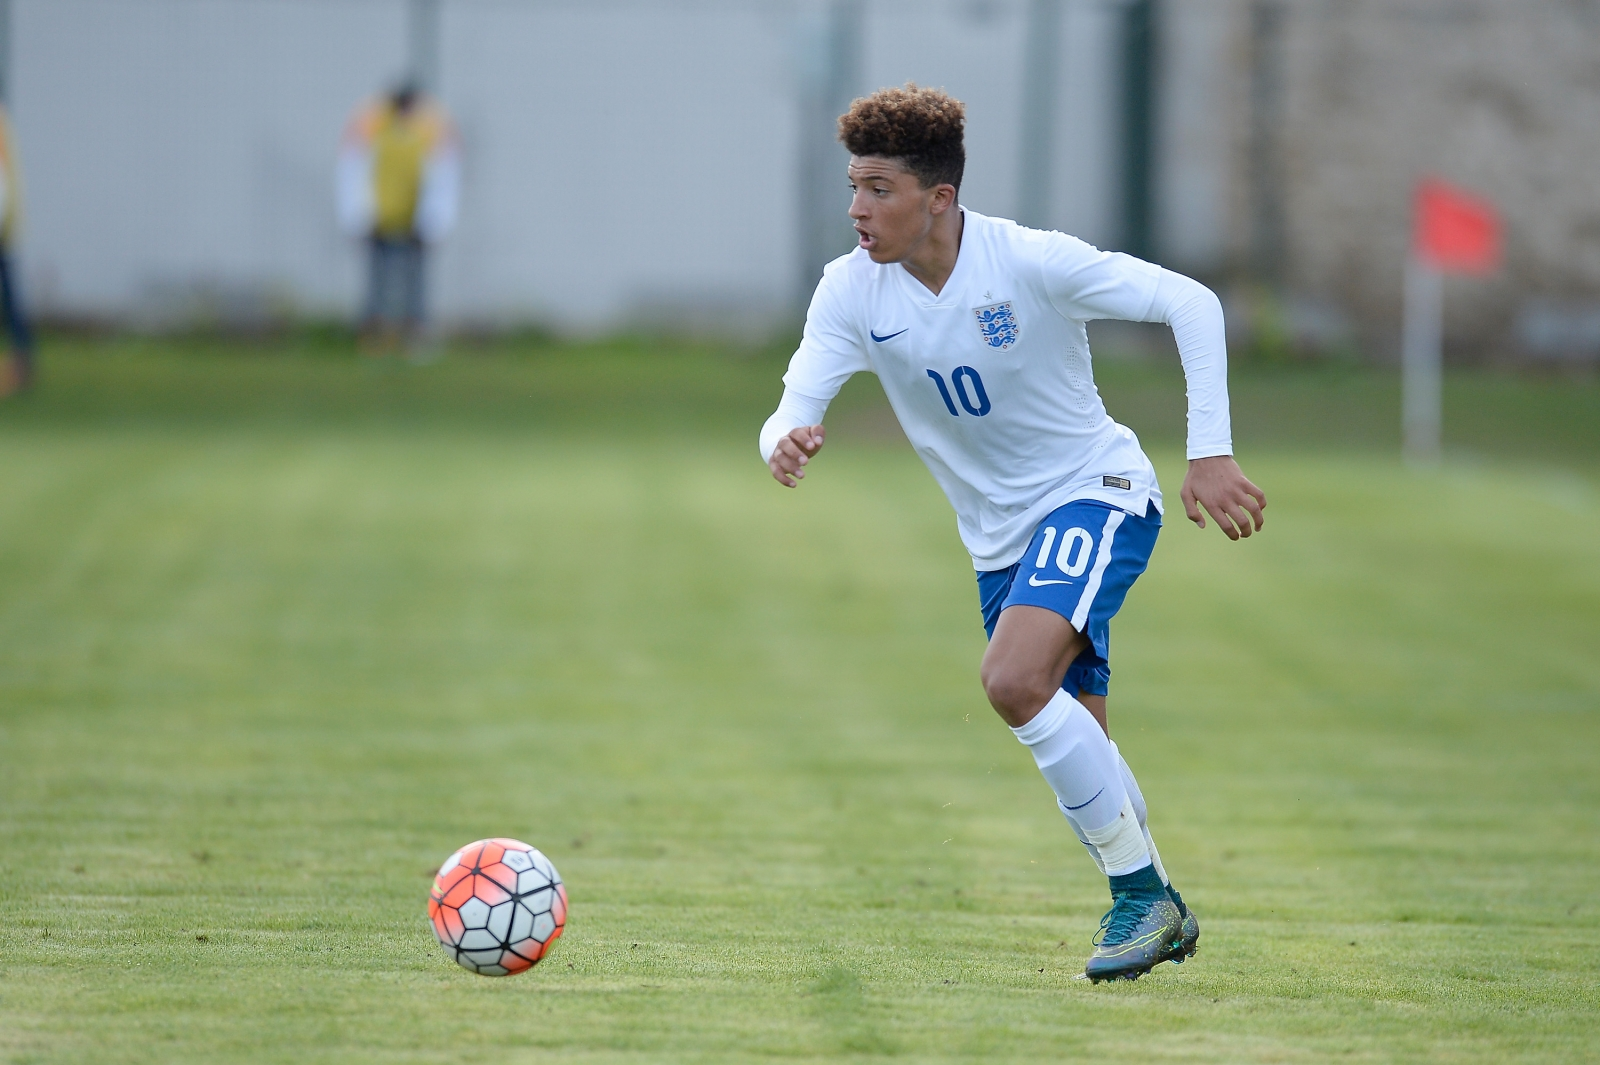 jadon sancho - photo #14